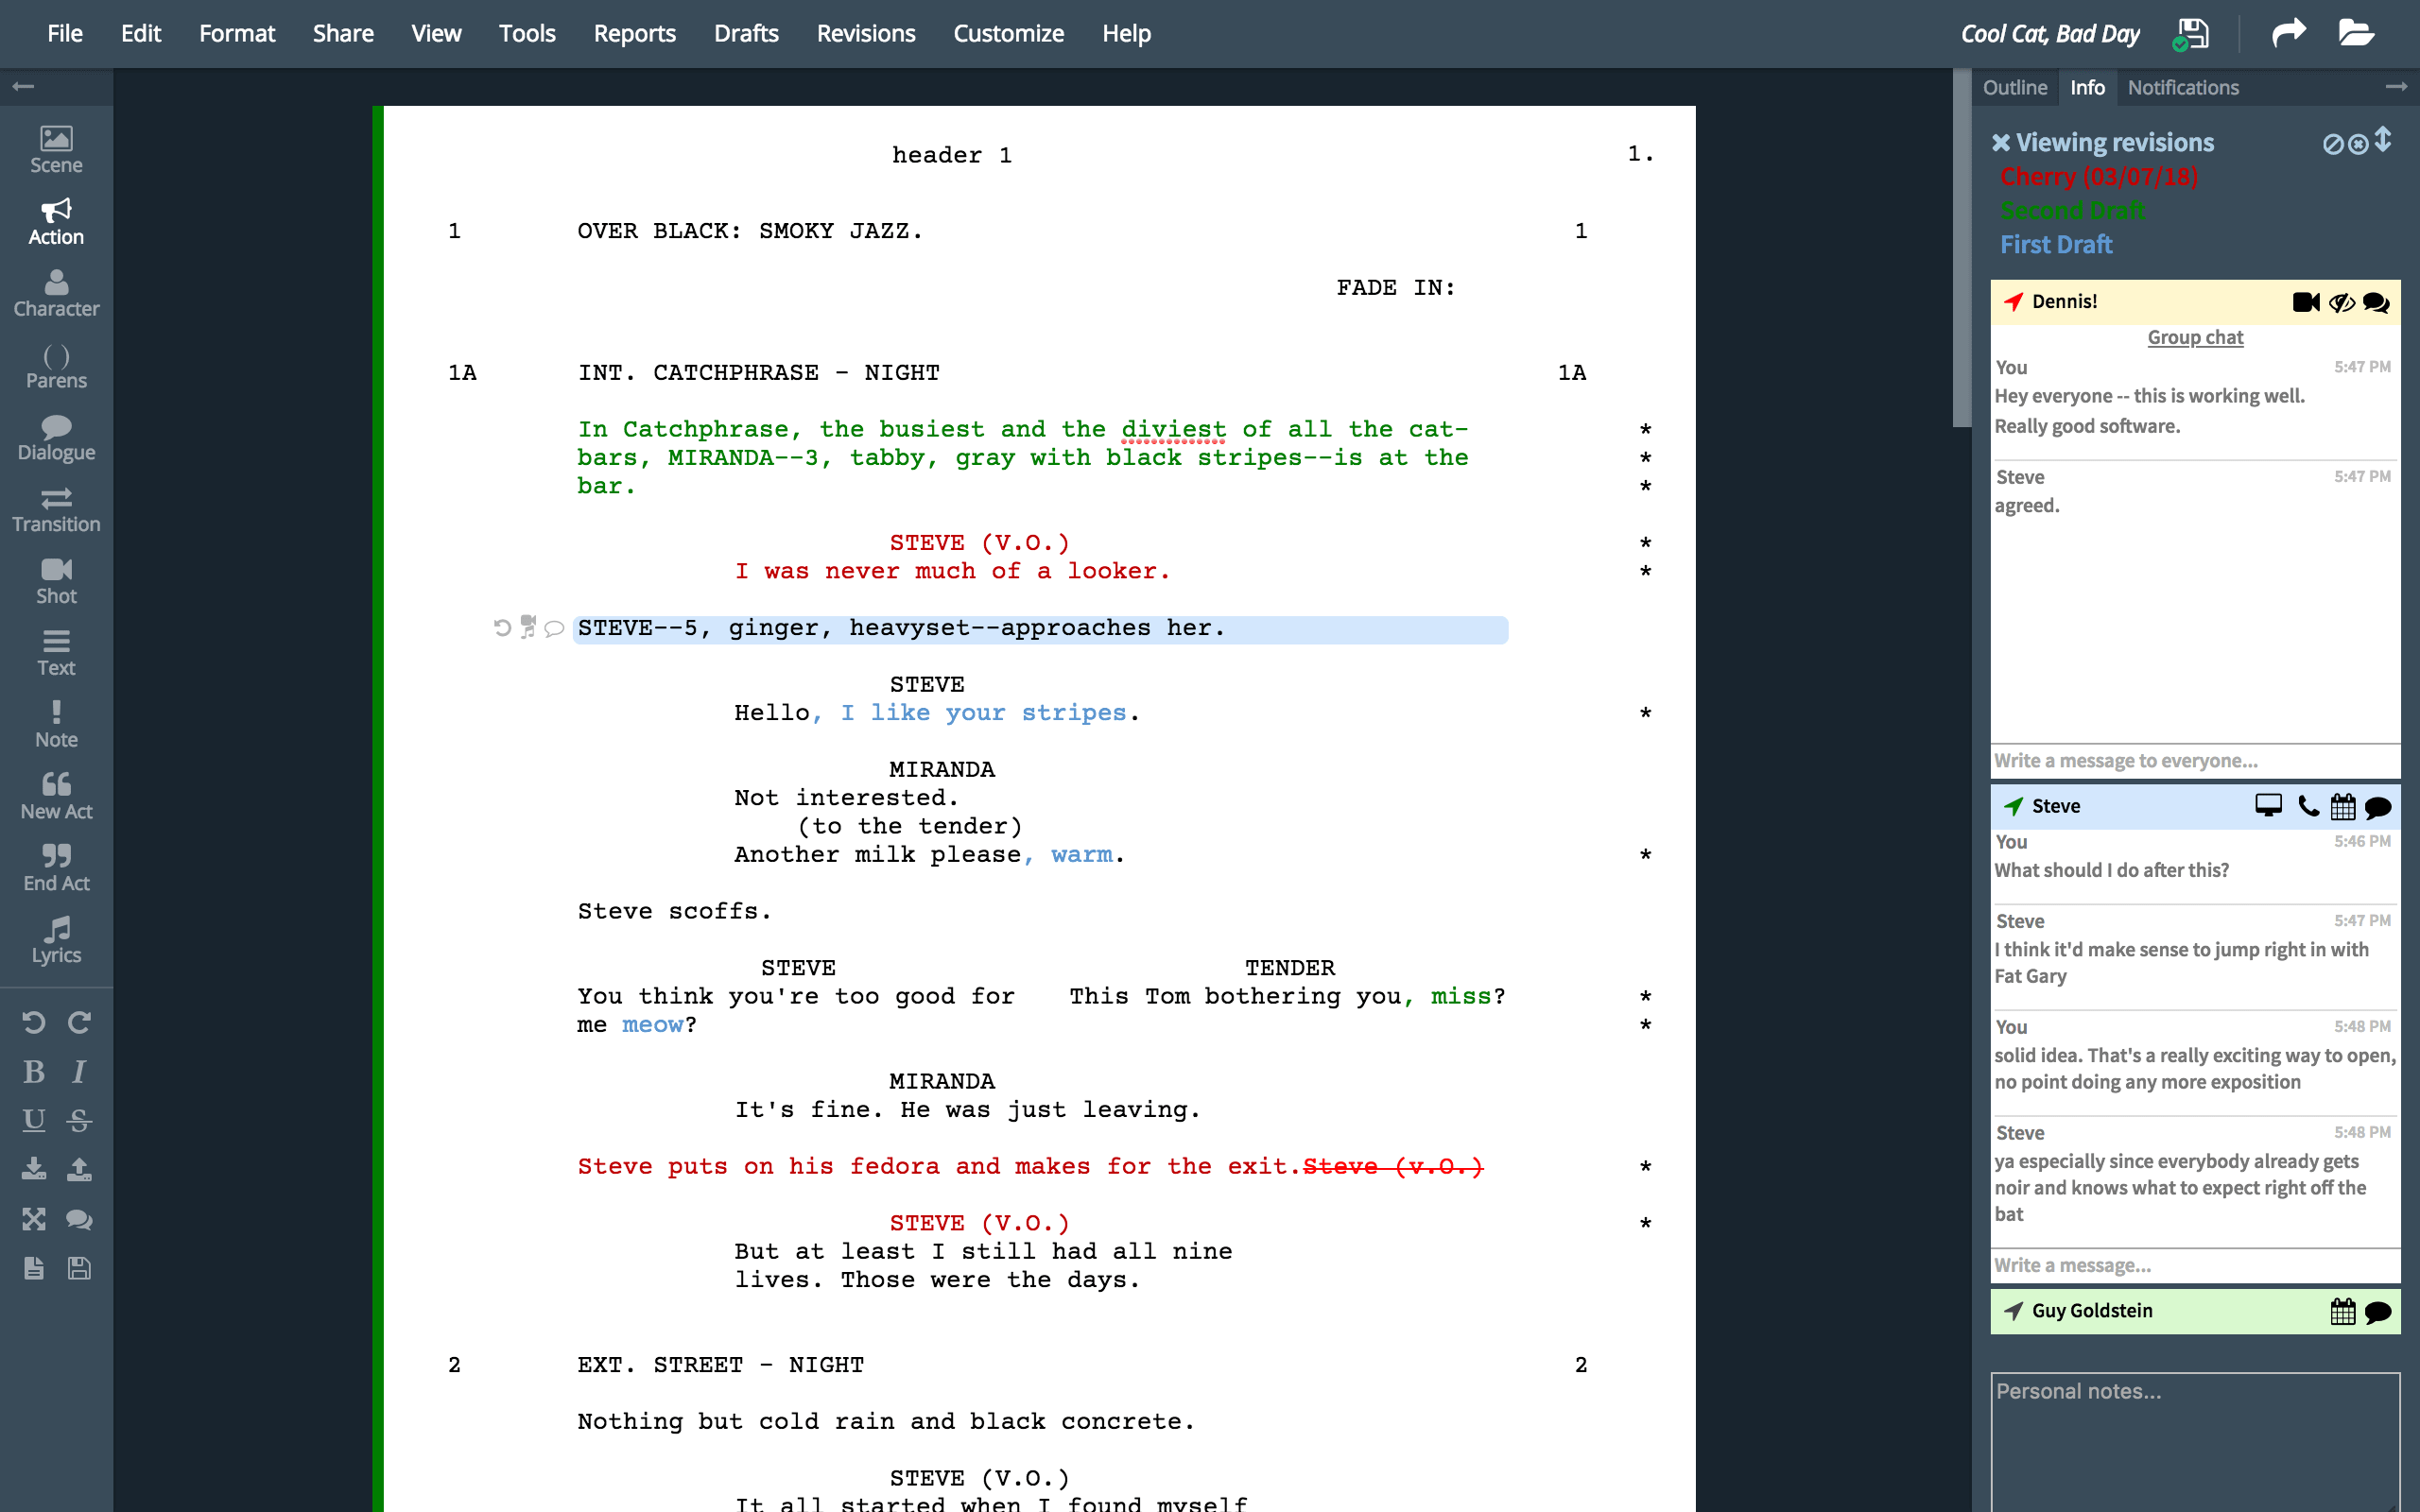 Best Free Script Writing Software for Professional Screenwriters - TV and Film - WriterDuet